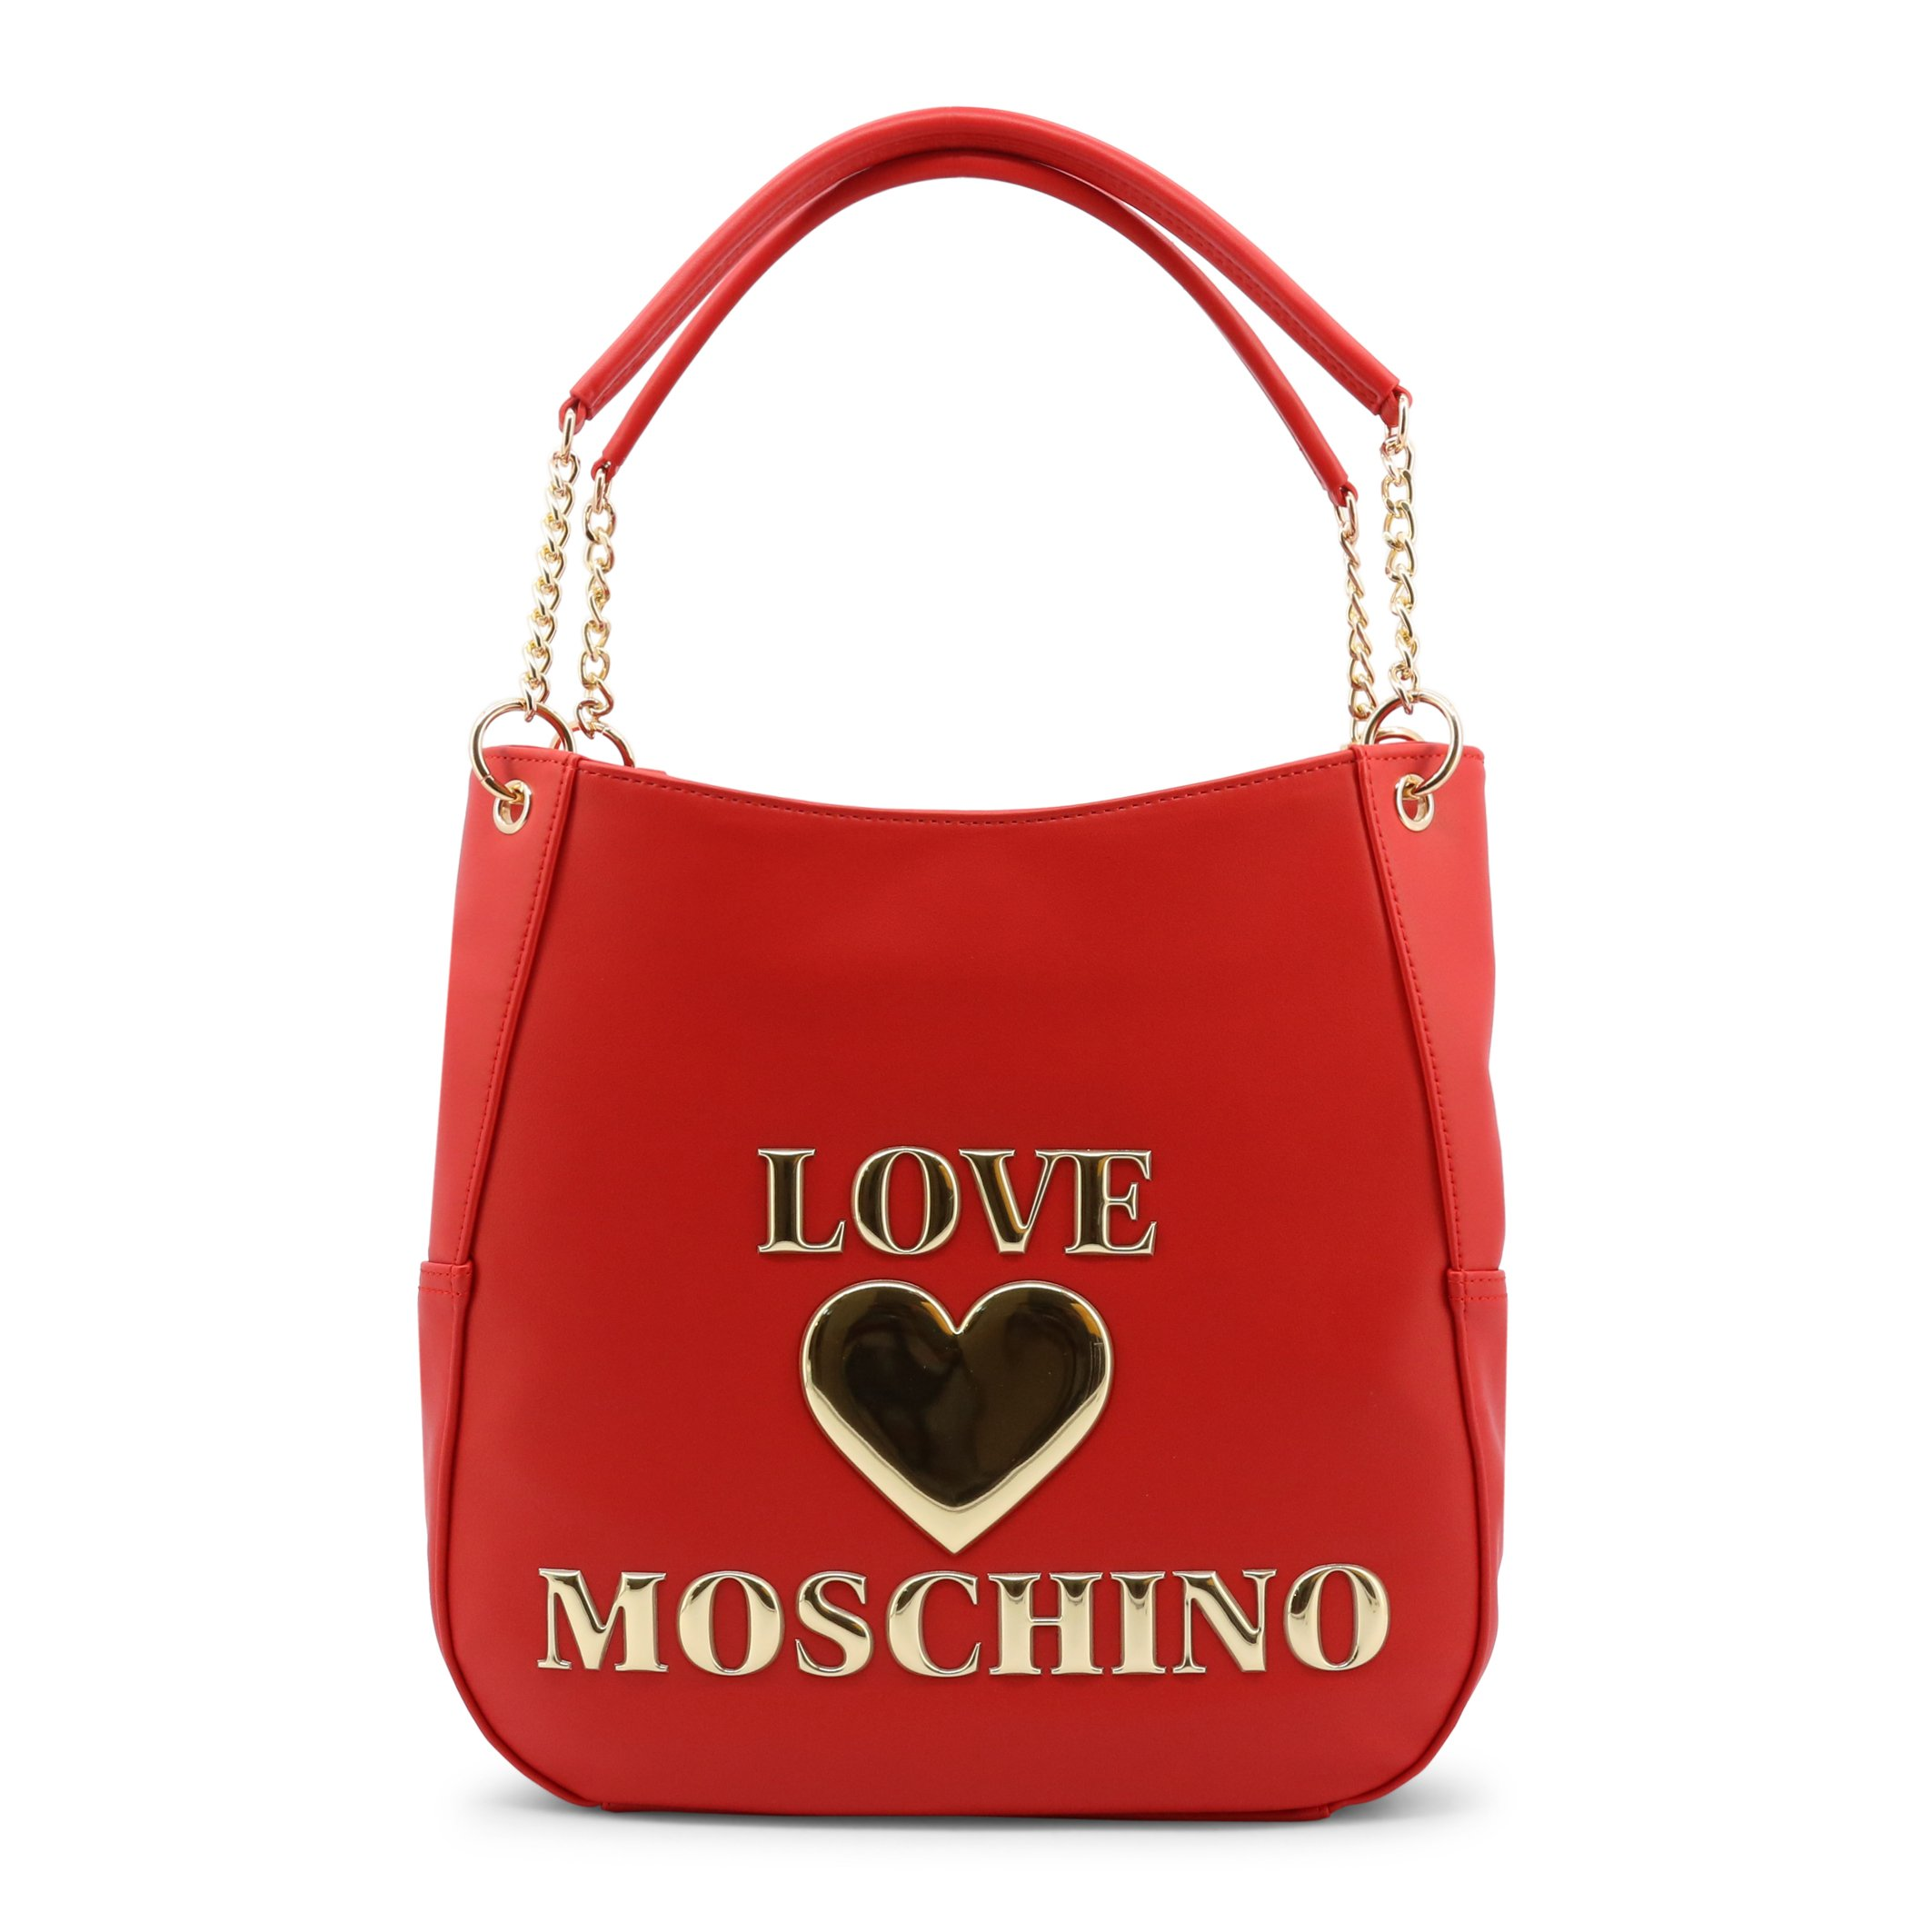 Love Moschino Women's Shoulder Bag Various Colours JC4169PP1DLF0 - red NOSIZE